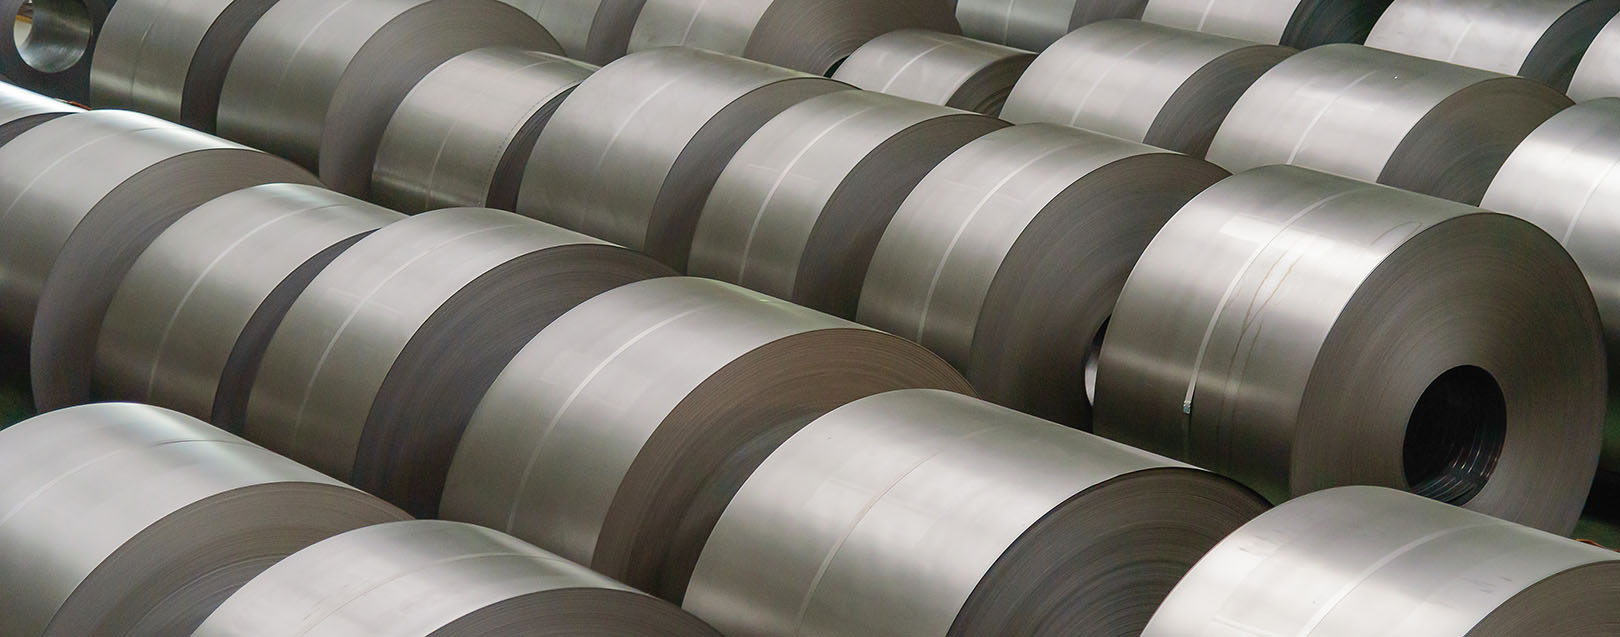 JSW Steel to spend up to $1 billion on capacity expansion and acquisitions